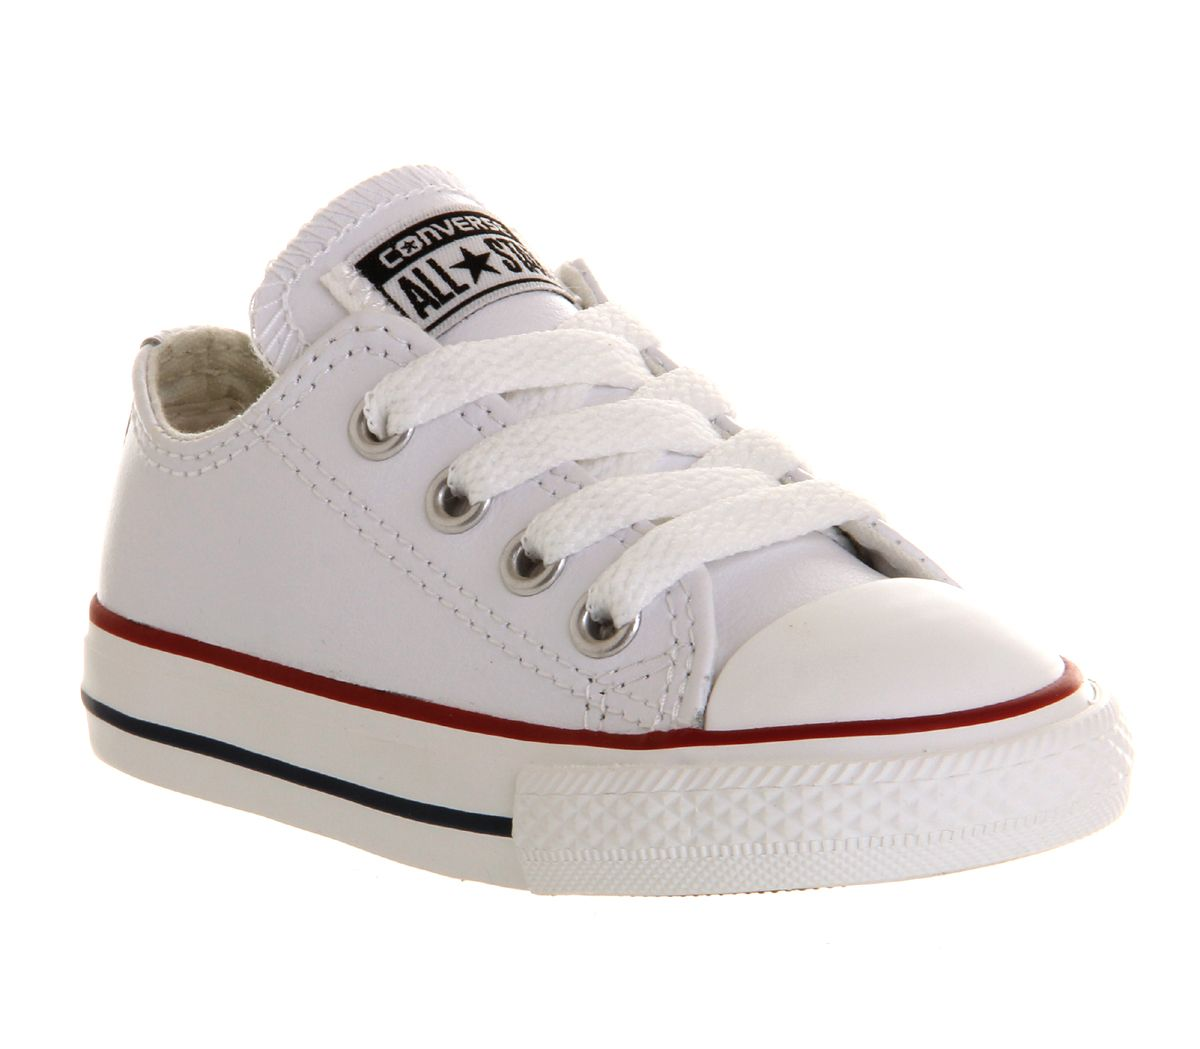 d4e9b70b745e Converse All Star Low Infant Shoes Optical White Leather - Unisex